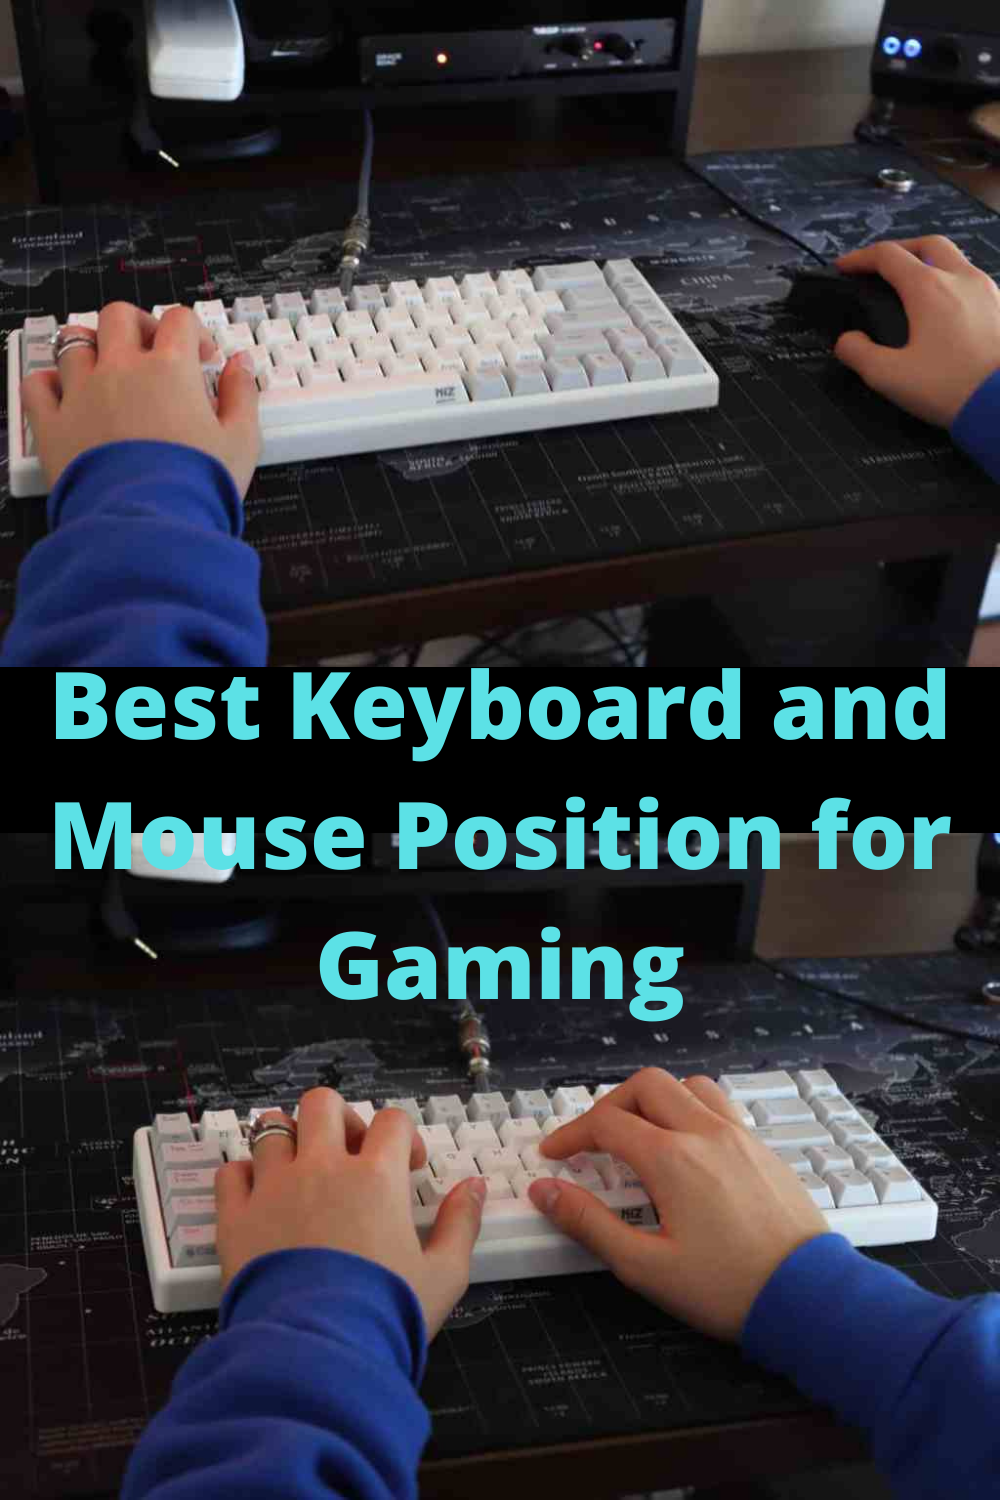 Best Keyboard and Mouse Position for Gaming